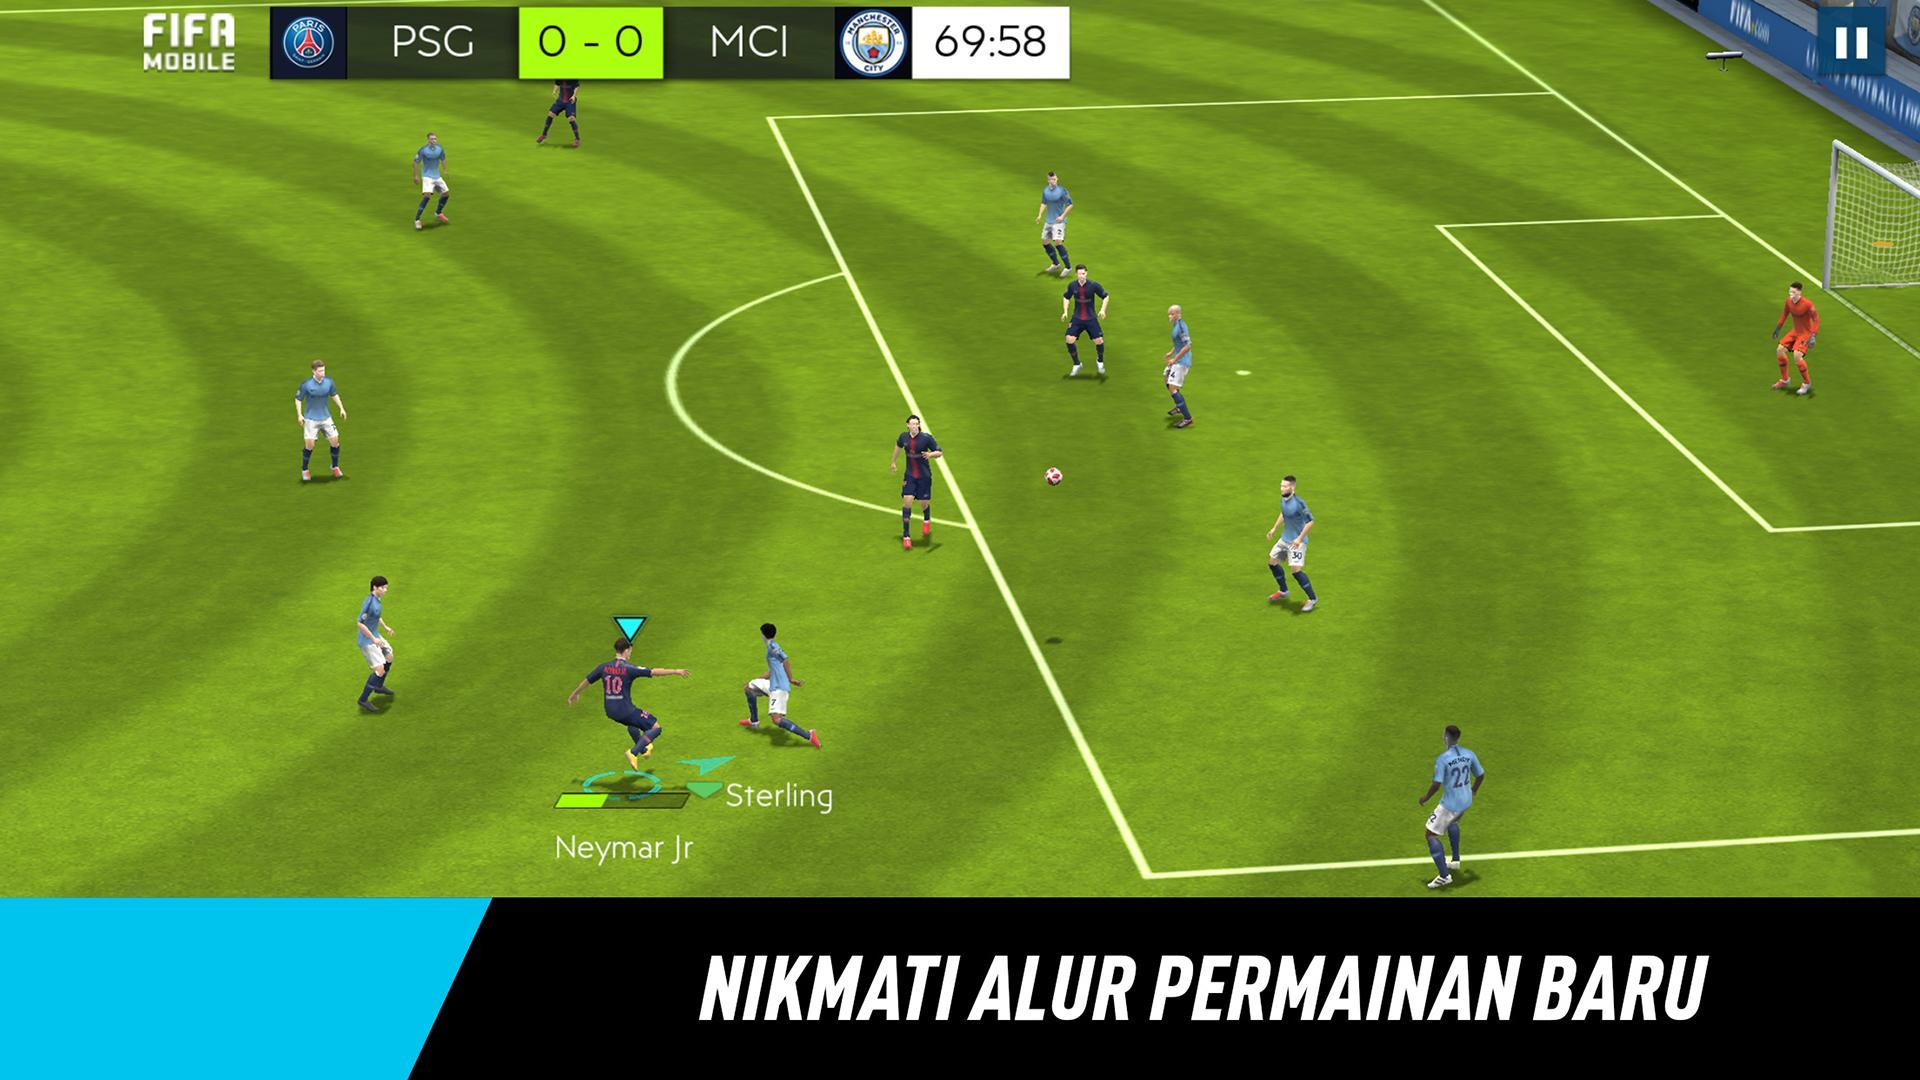 FIFA 17, FIFA Mobile Soccer 12.6.03 APK Download